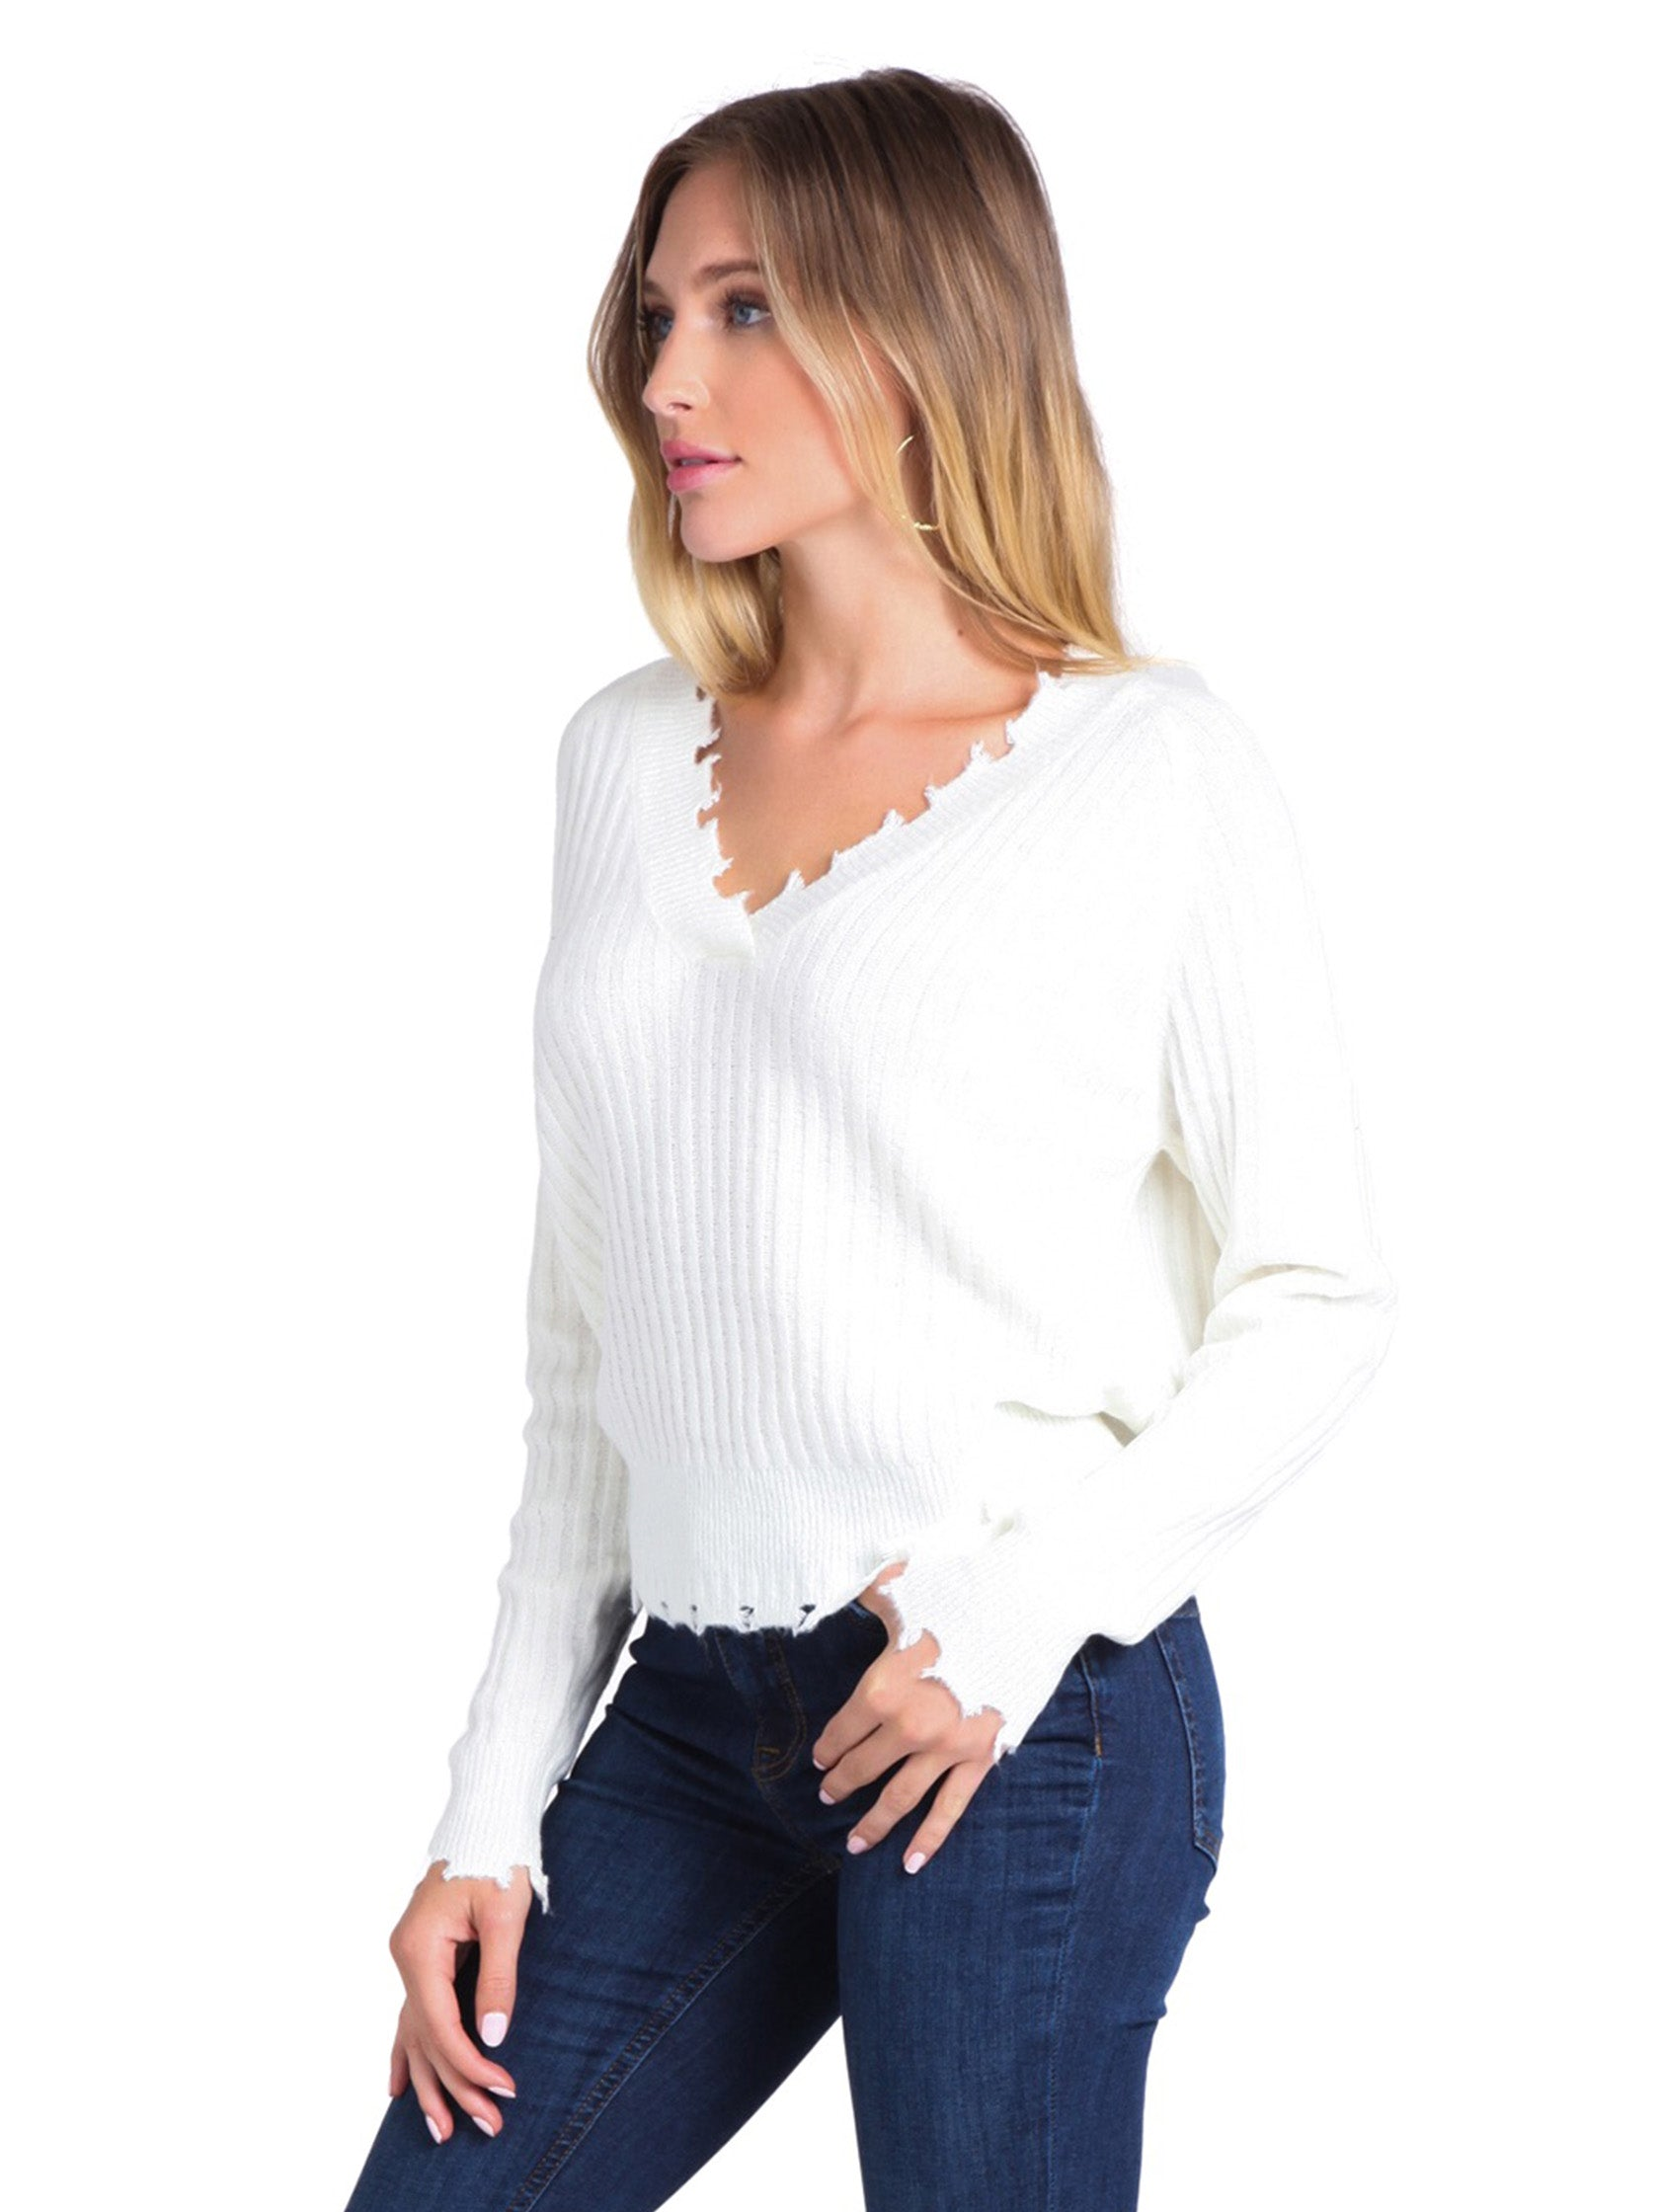 Women wearing a sweater rental from FashionPass called Distressed Ivory Sweater